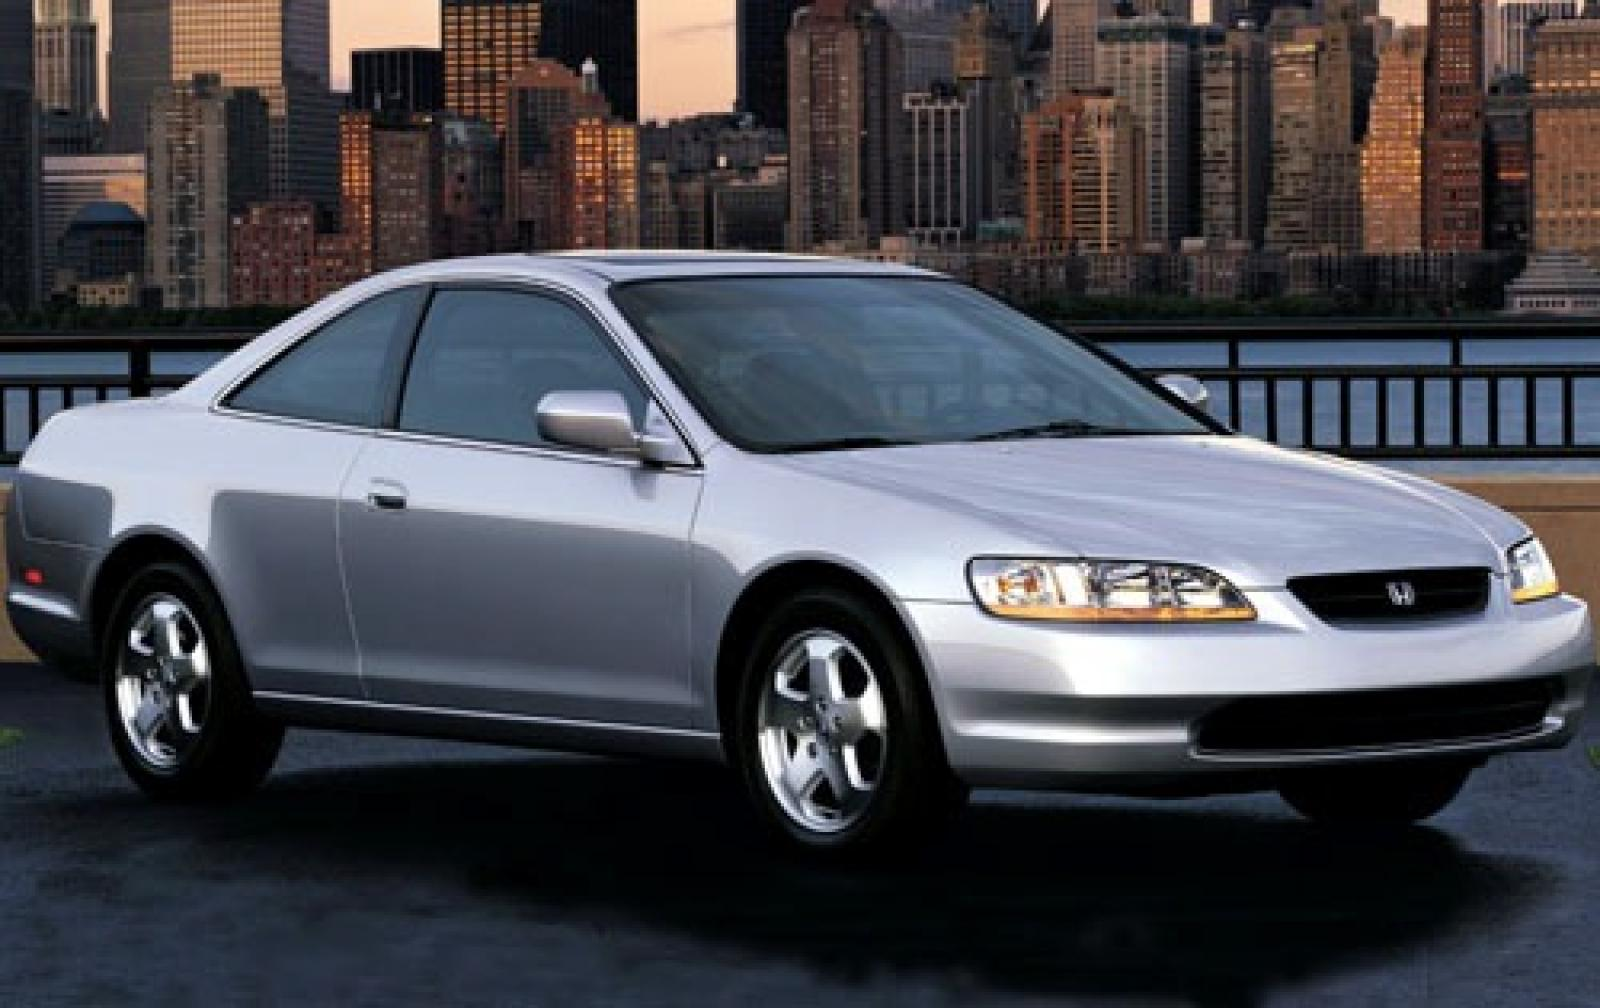 2001 Honda Accord Information And Photos Zombiedrive Engine Diagram 800 1024 1280 1600 Origin